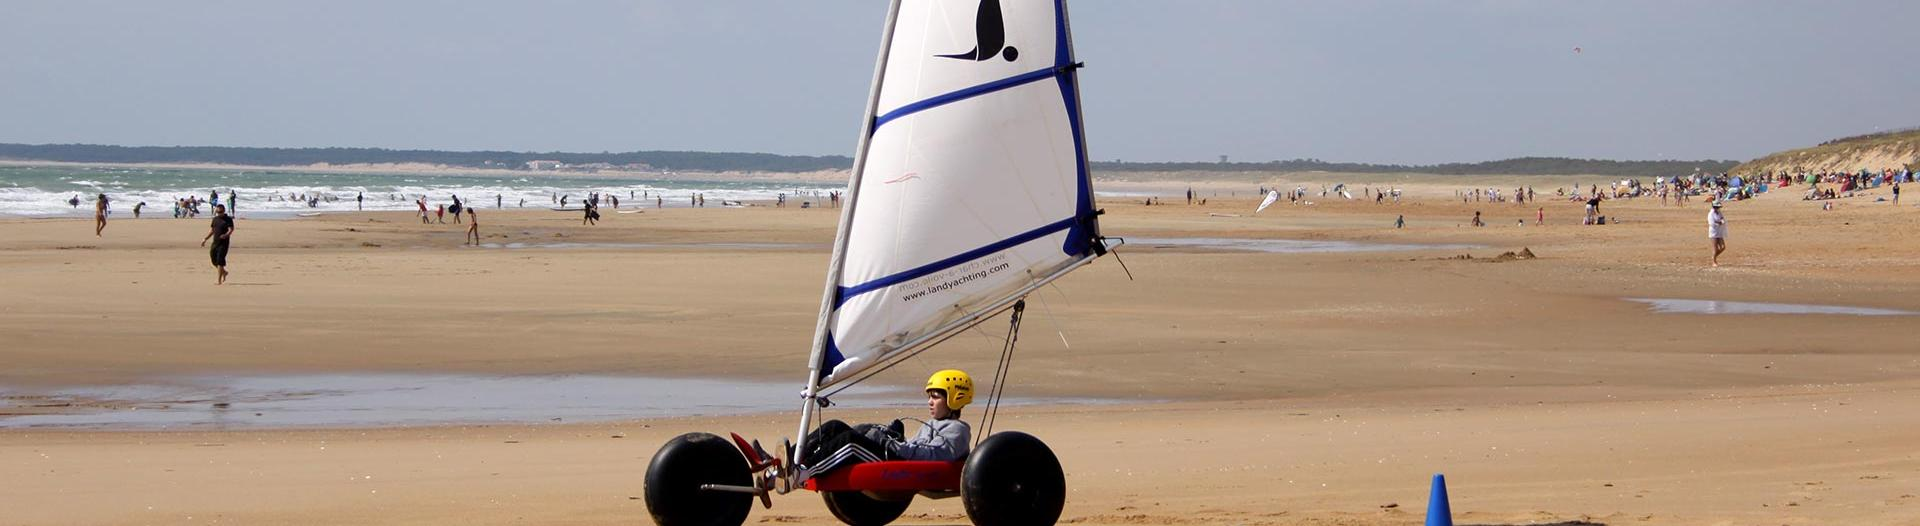 slider-vendee-char-a-voile